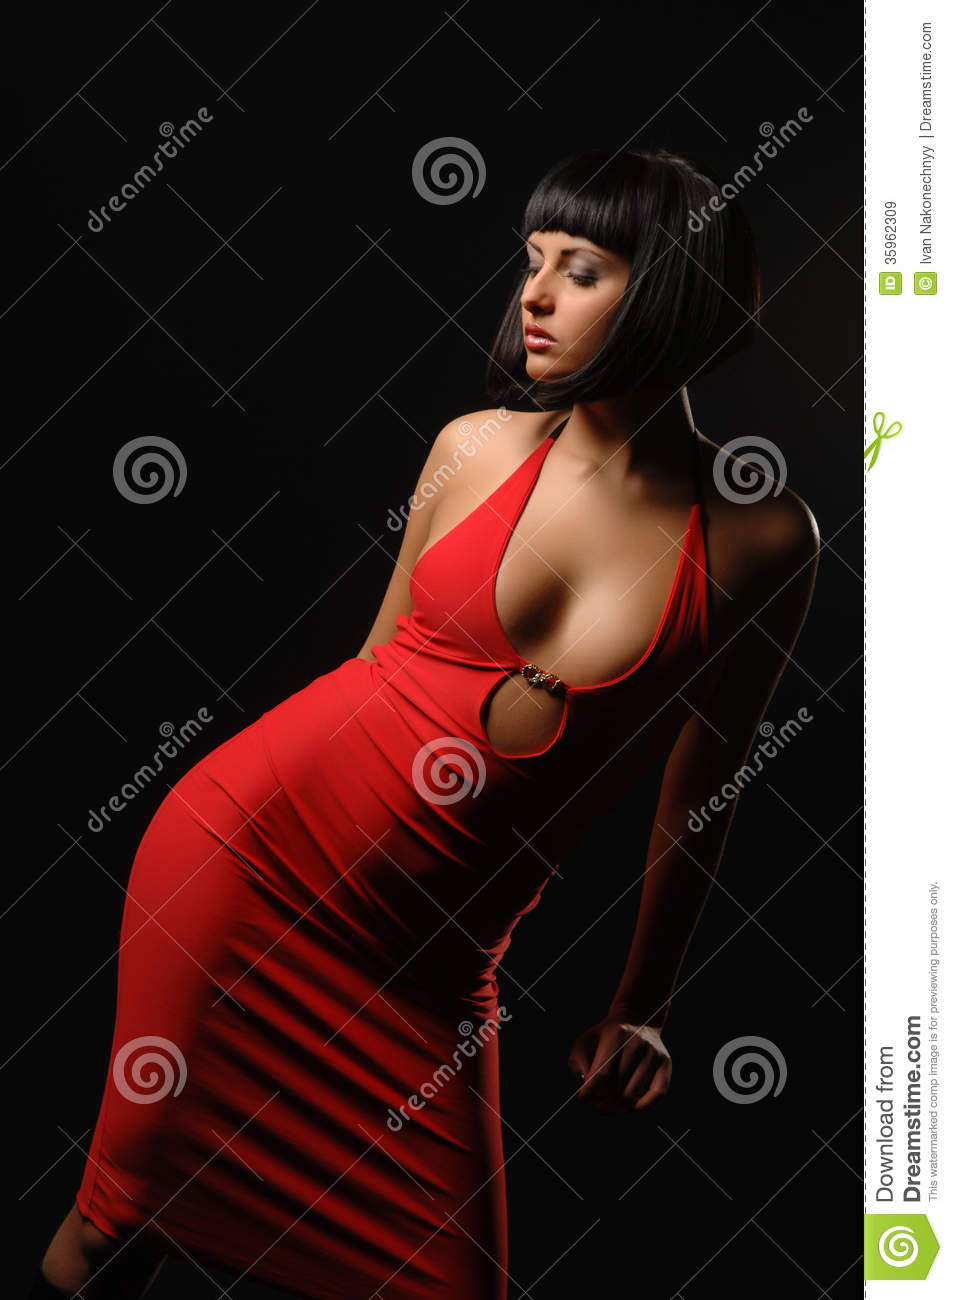 Girl In Red Dress Royalty Free Stock Images - Image: 35962309